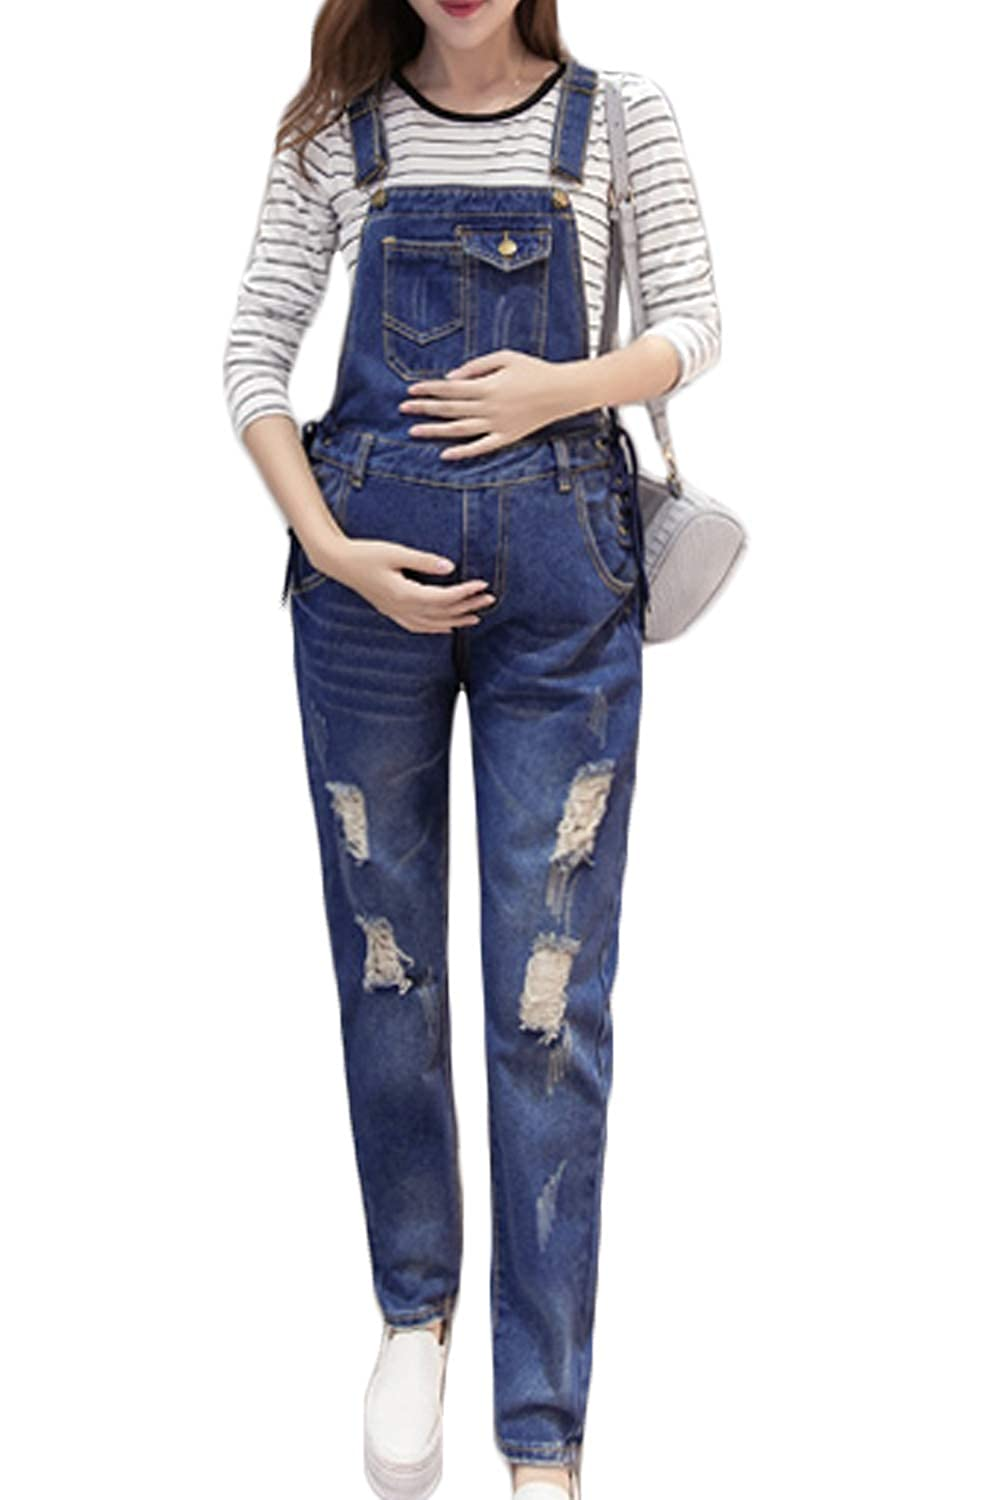 Simgahuva Women Maternity Denim Overalls Adjustable Jumpsuit Fit Belly Pants